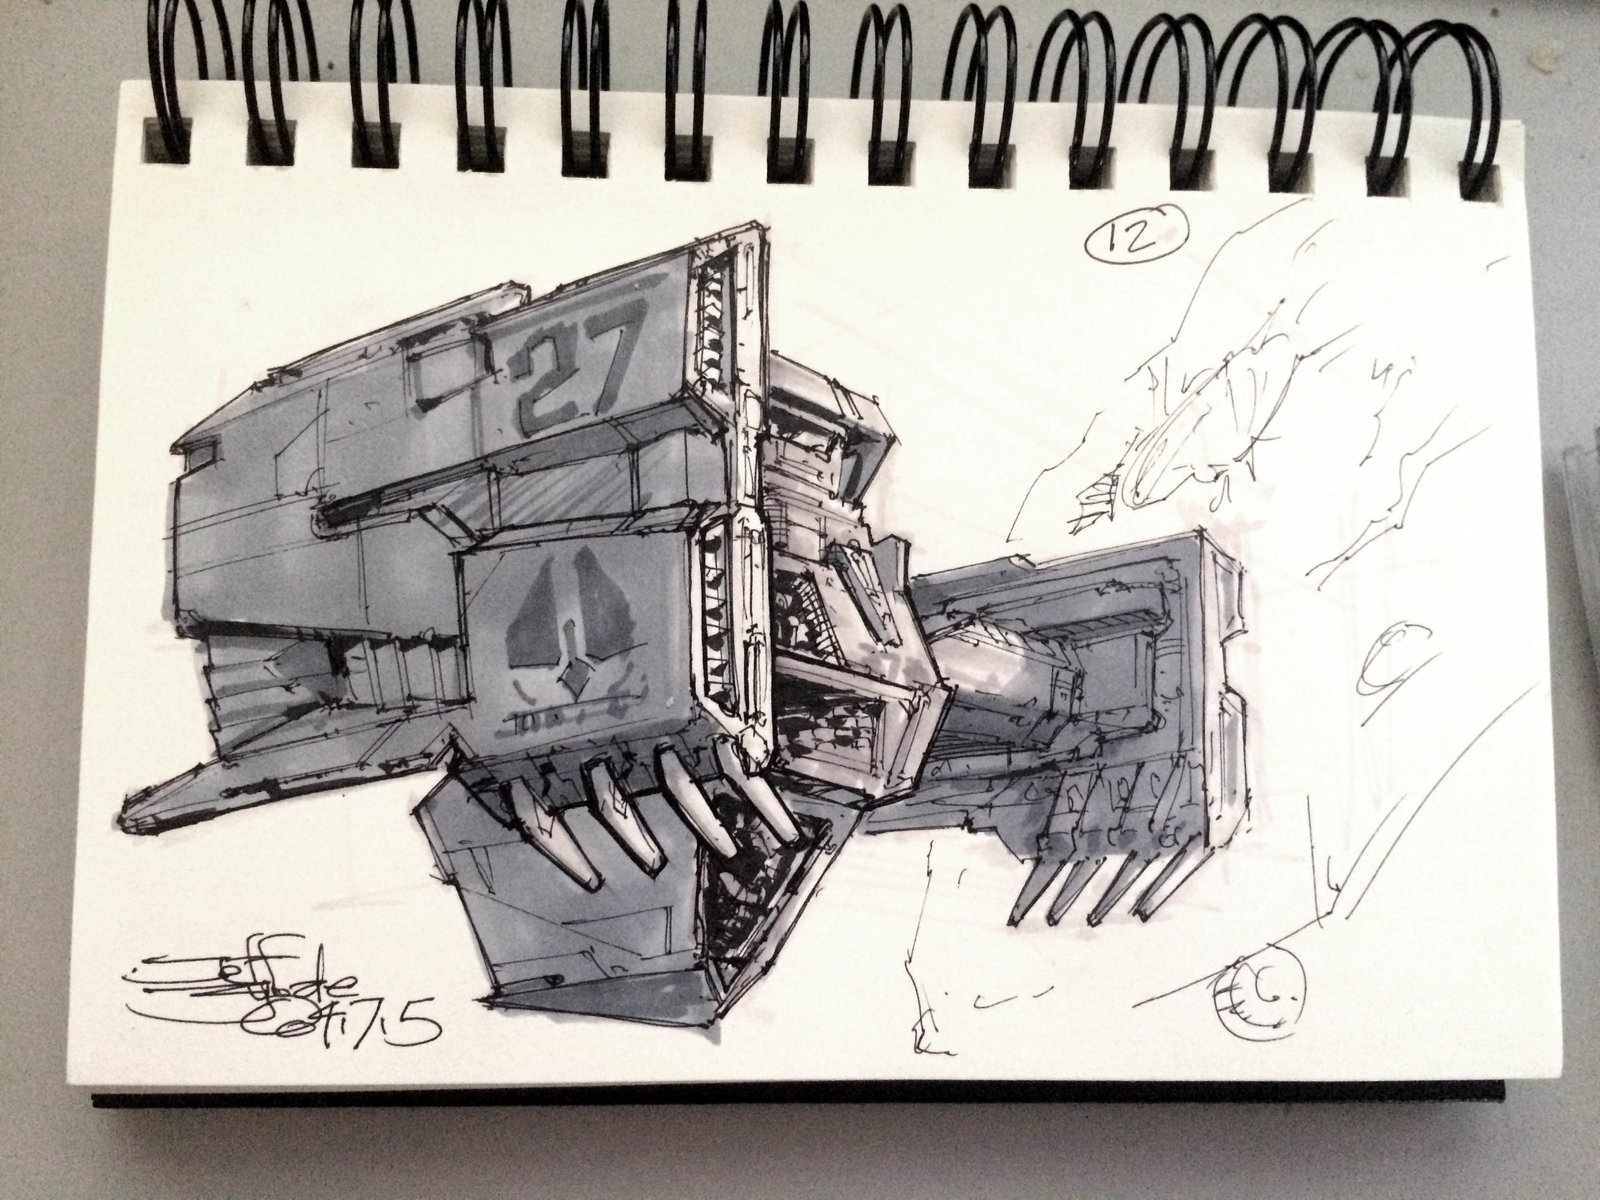 SpaceshipADay 012